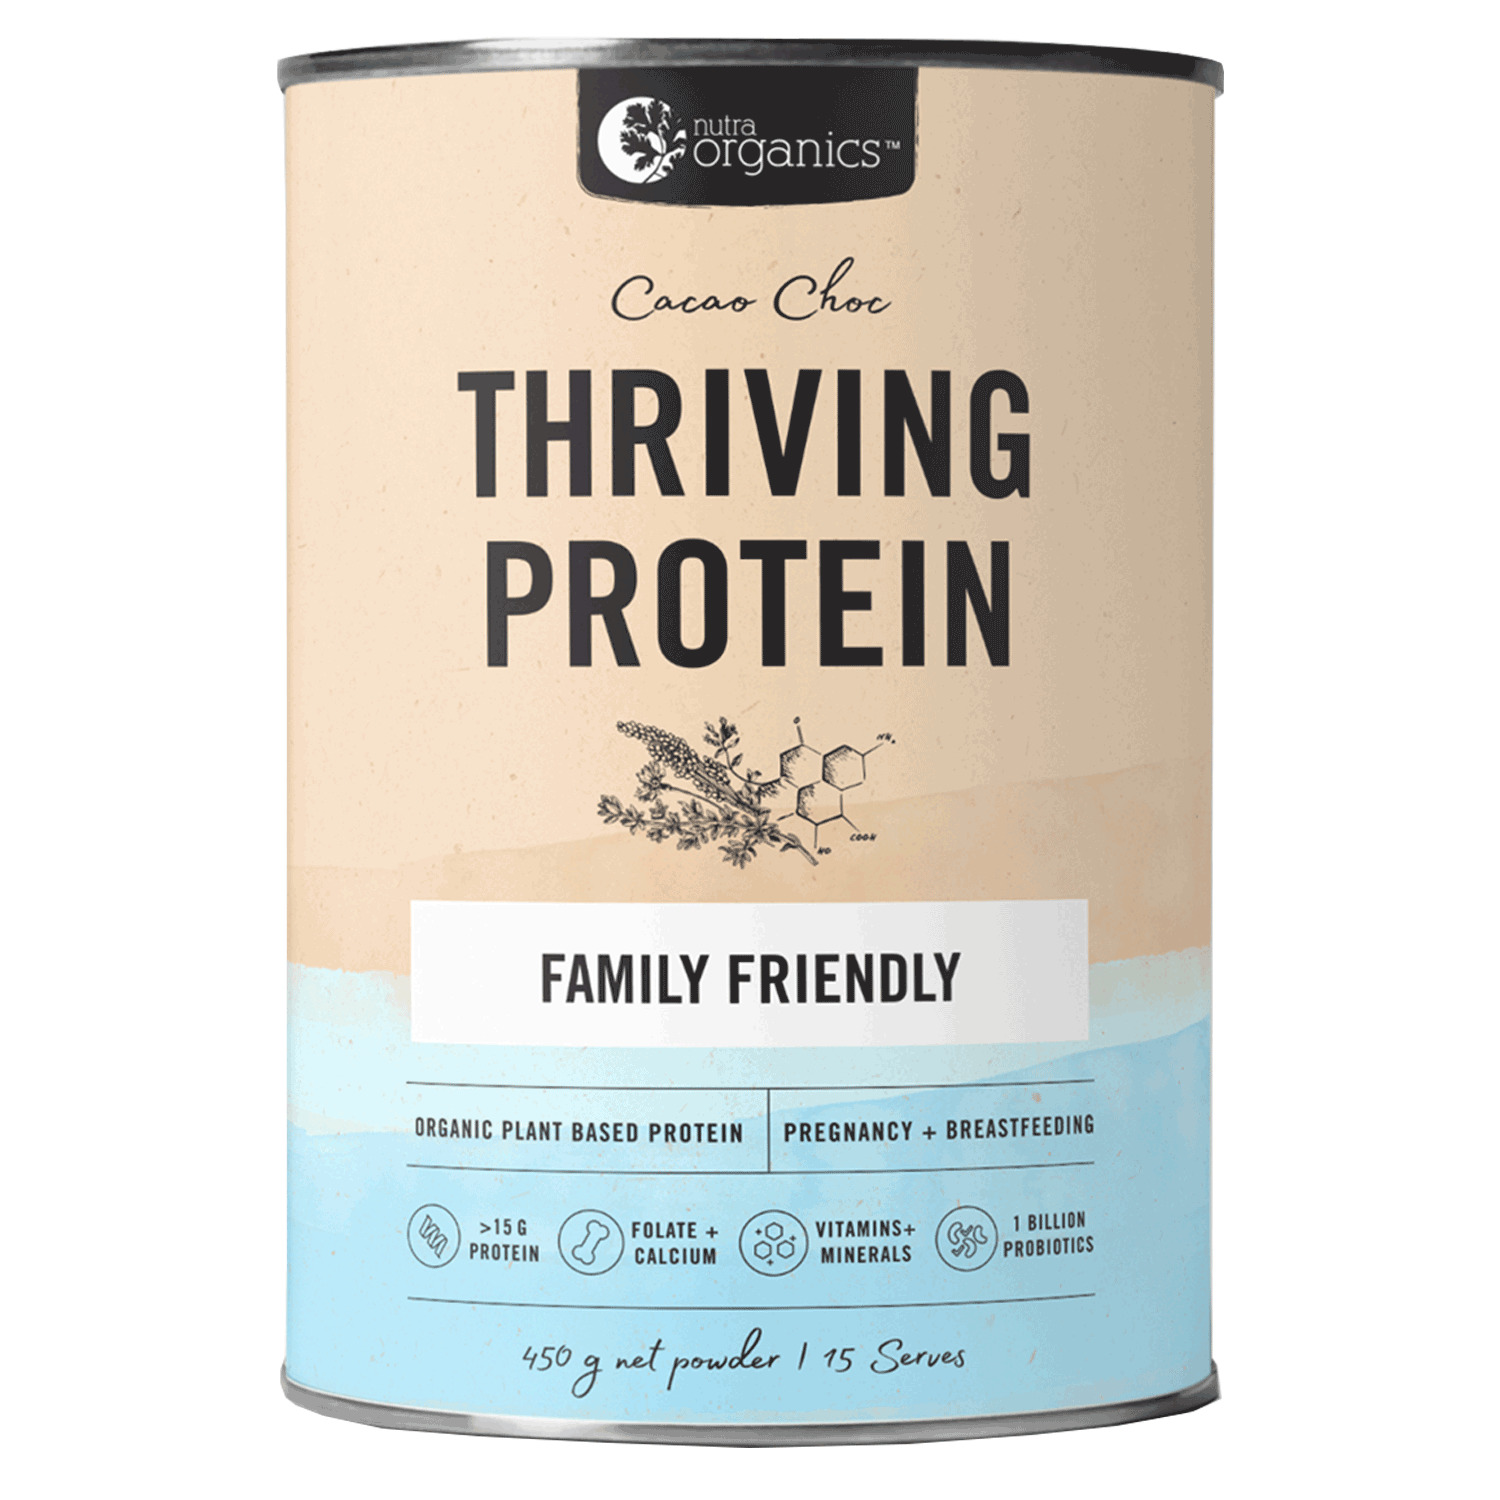 Nutra Organics Thriving Protein Powder - Cacao Chocolate (450g) image